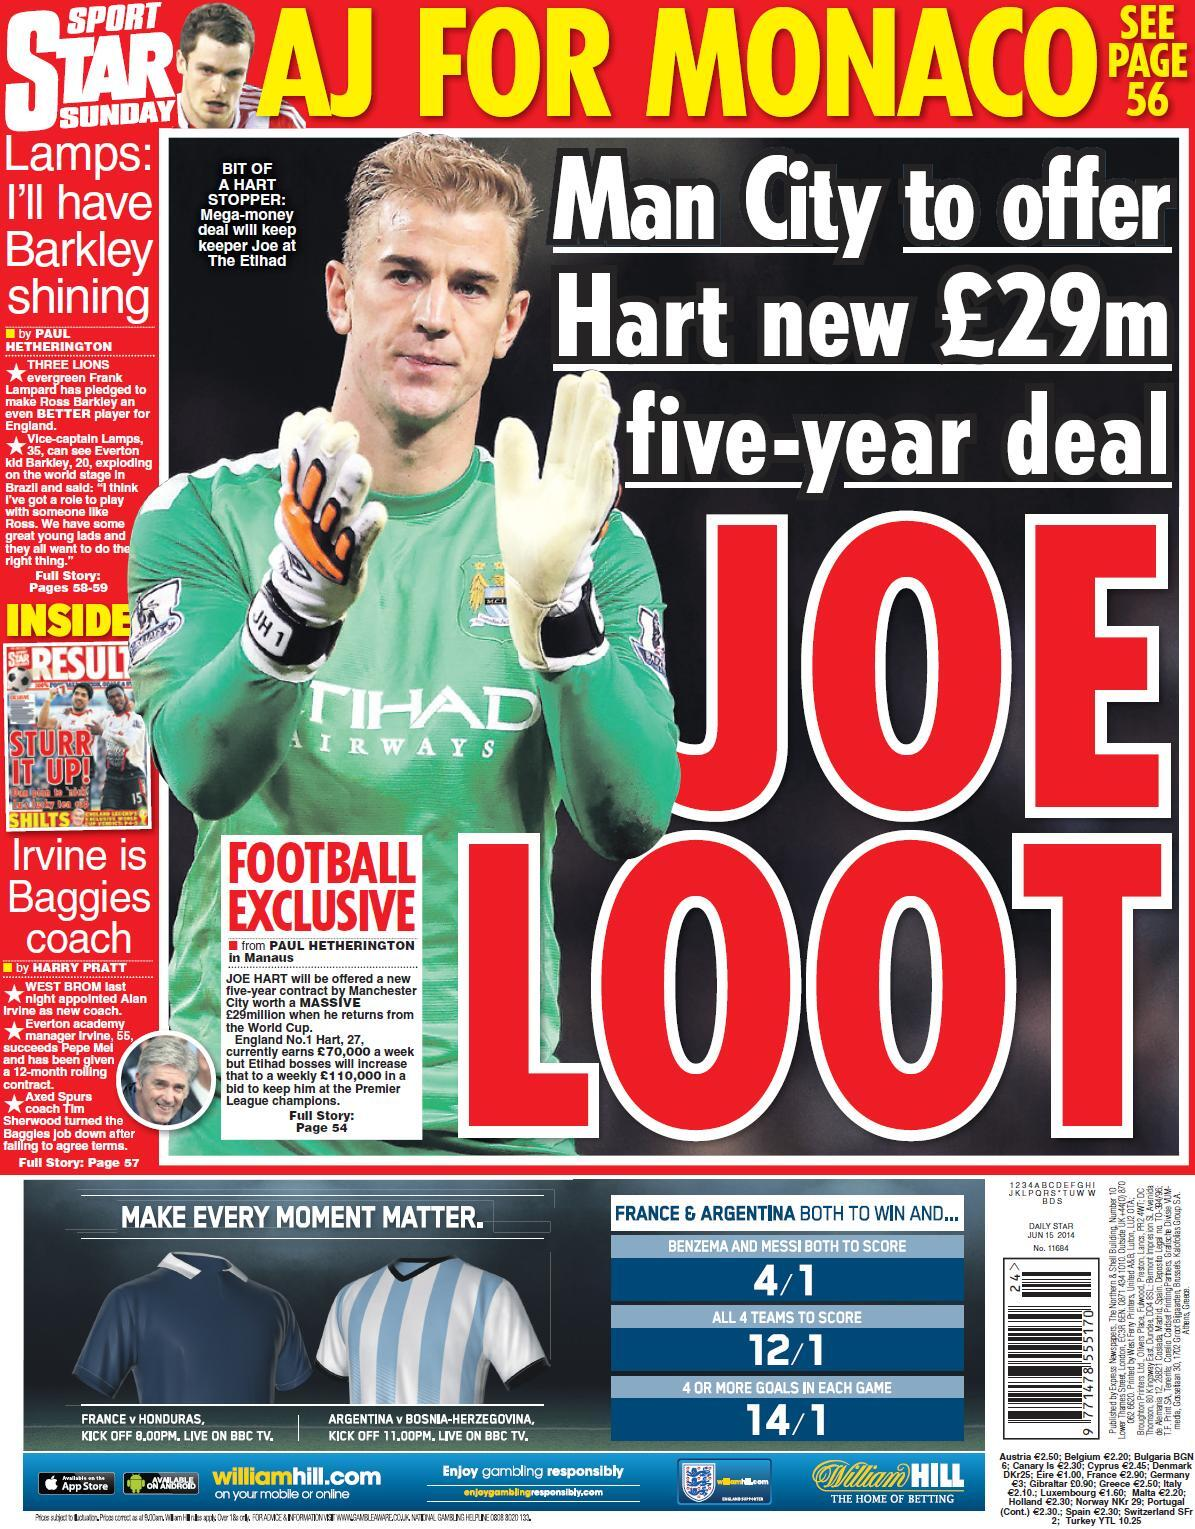 England goalie Joe Hart to be awarded a new £29m, 5 year deal at Man City [Star on Sunday]